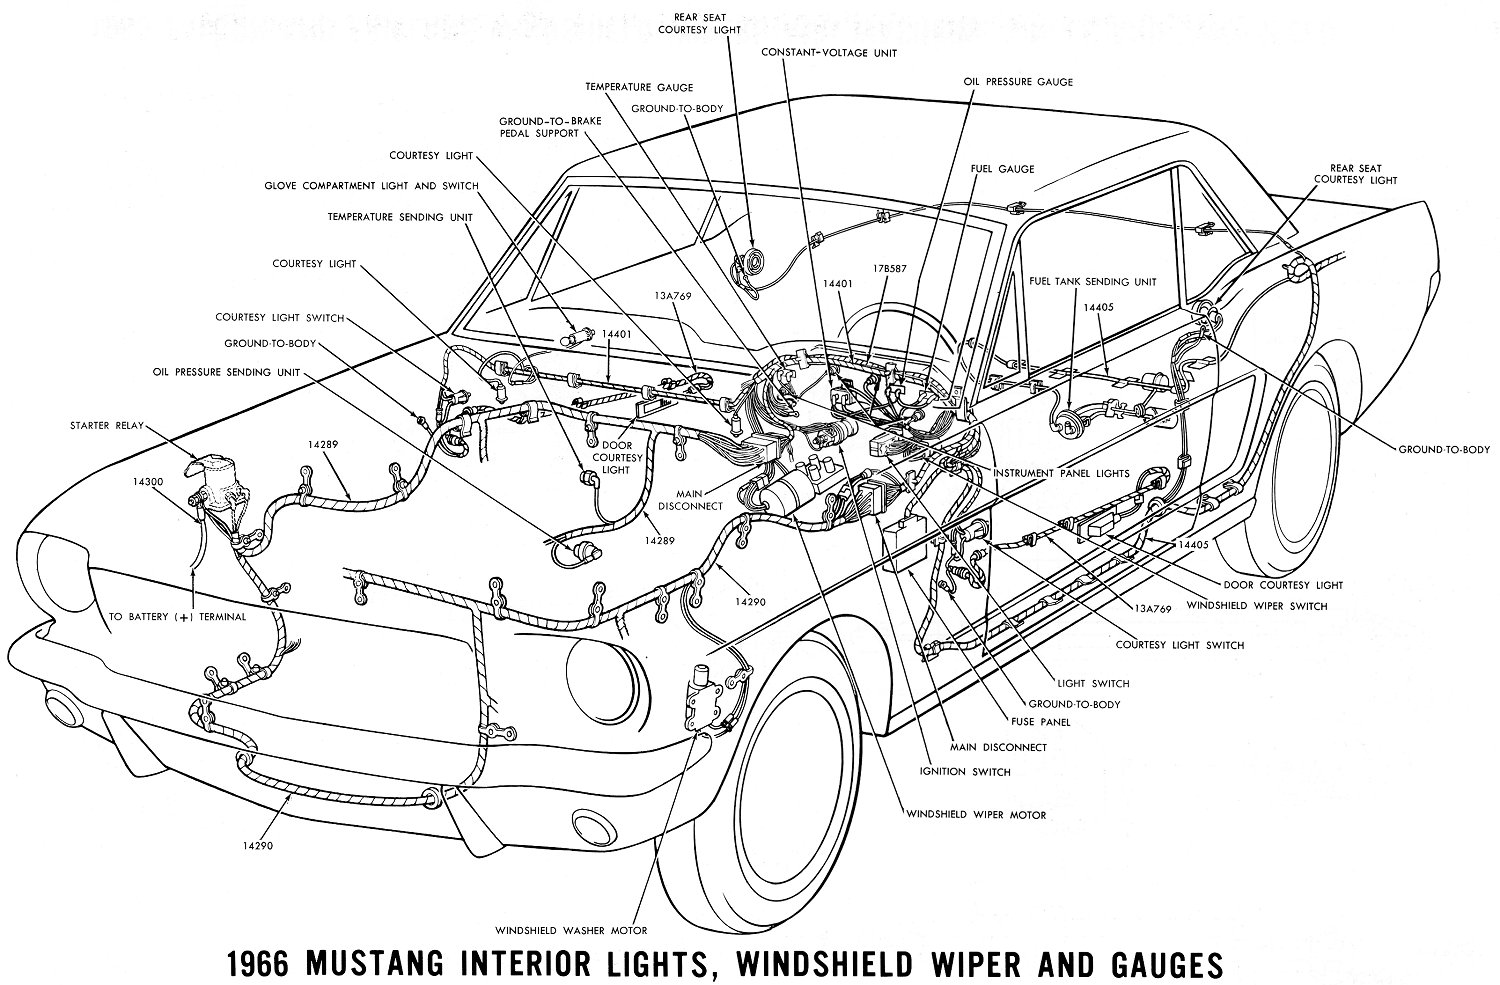 1966 ford mustang wiring diagram 1966 mustang wiring diagrams average joe restoration 1966 mustang interior lights windshield wiper and gauges Ã'